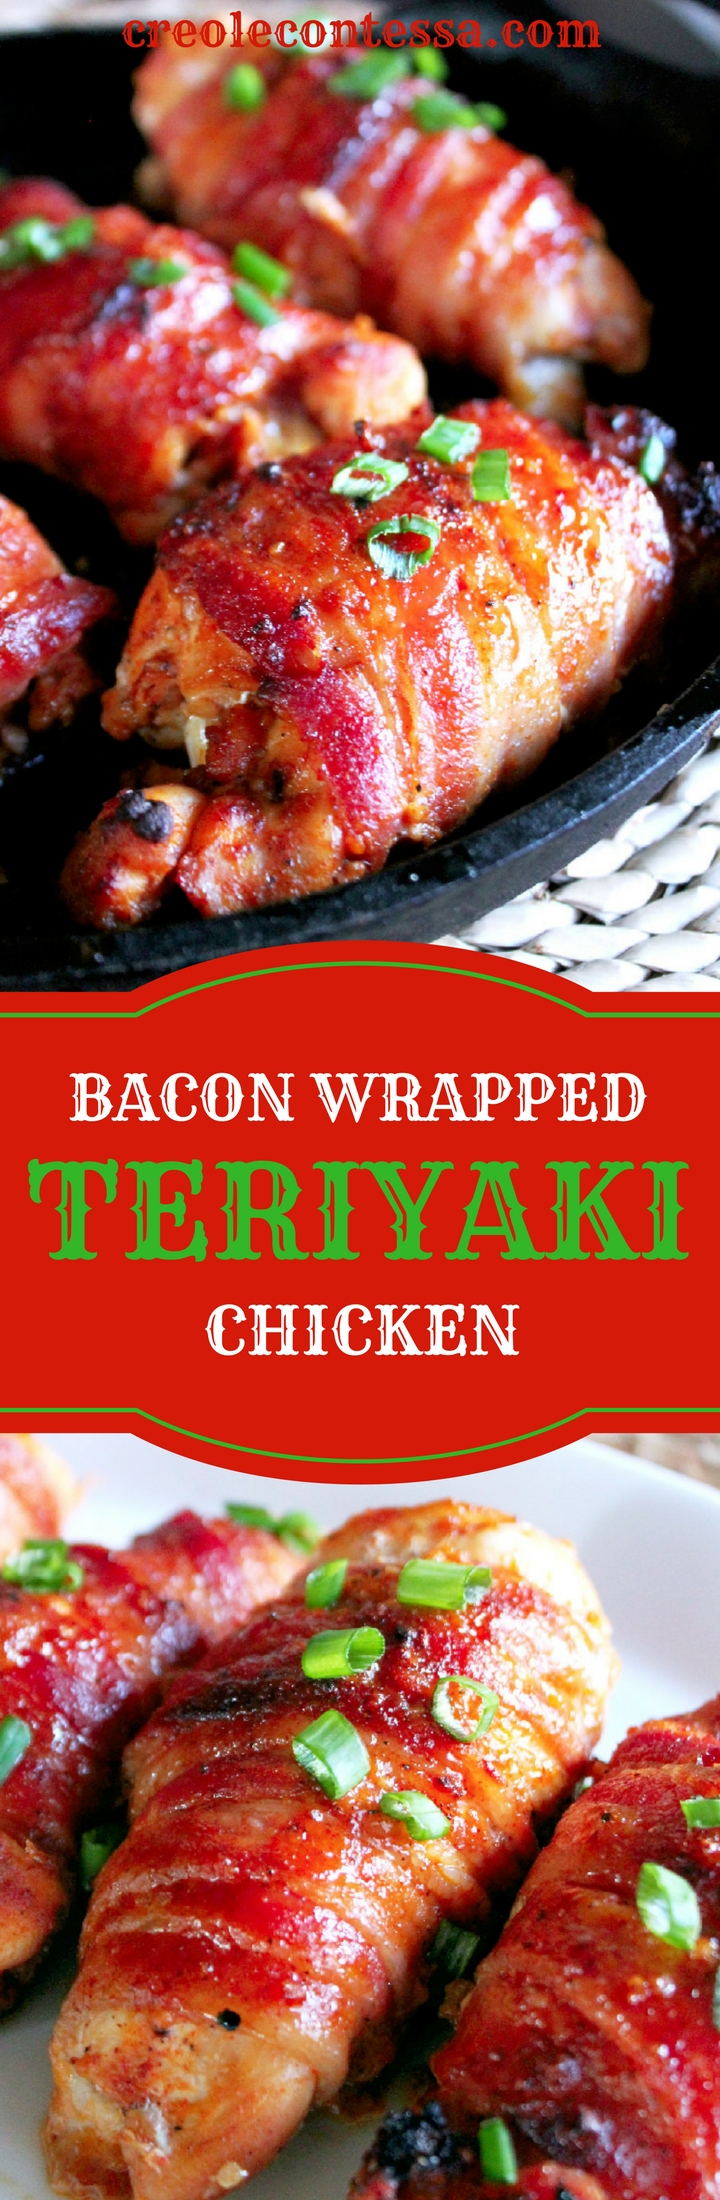 Bacon Wrapped Teriyaki Chicken with Kikkoman-Creole Contessa